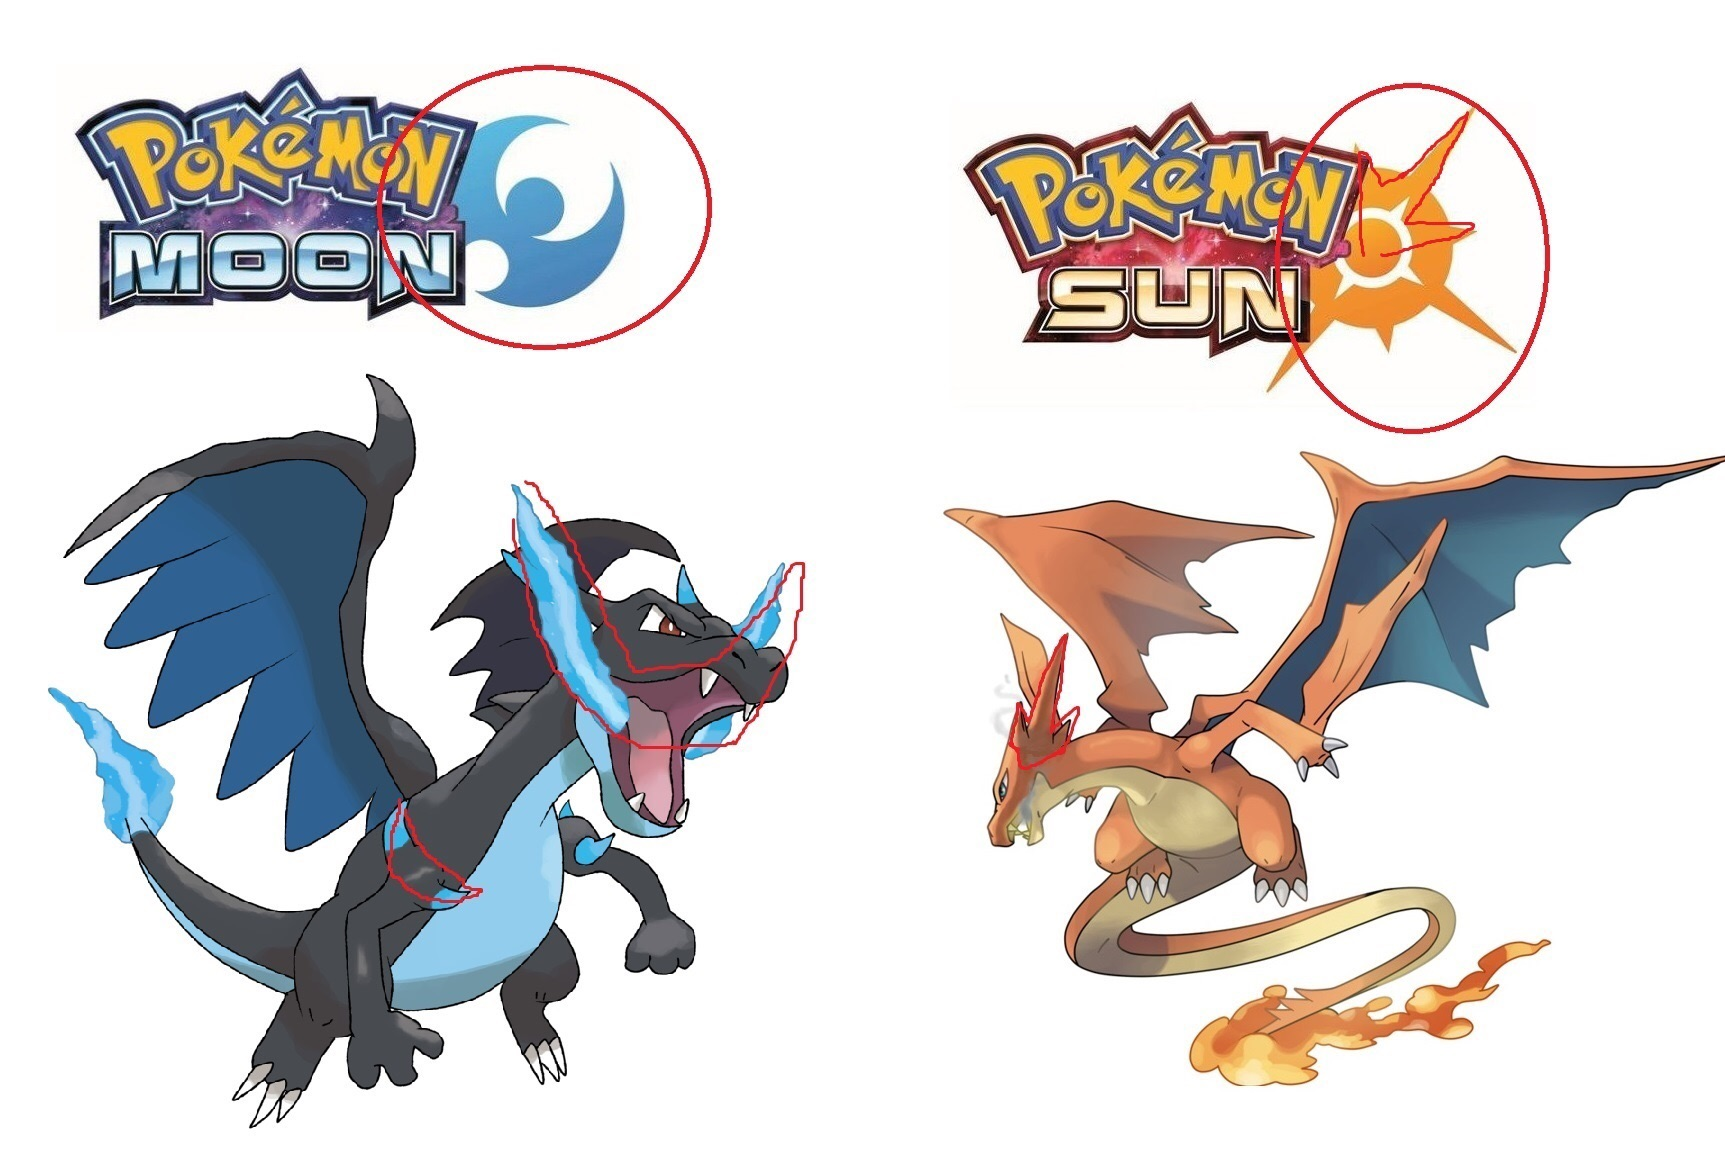 eaa if you thought charizard was overrated before pokémon know